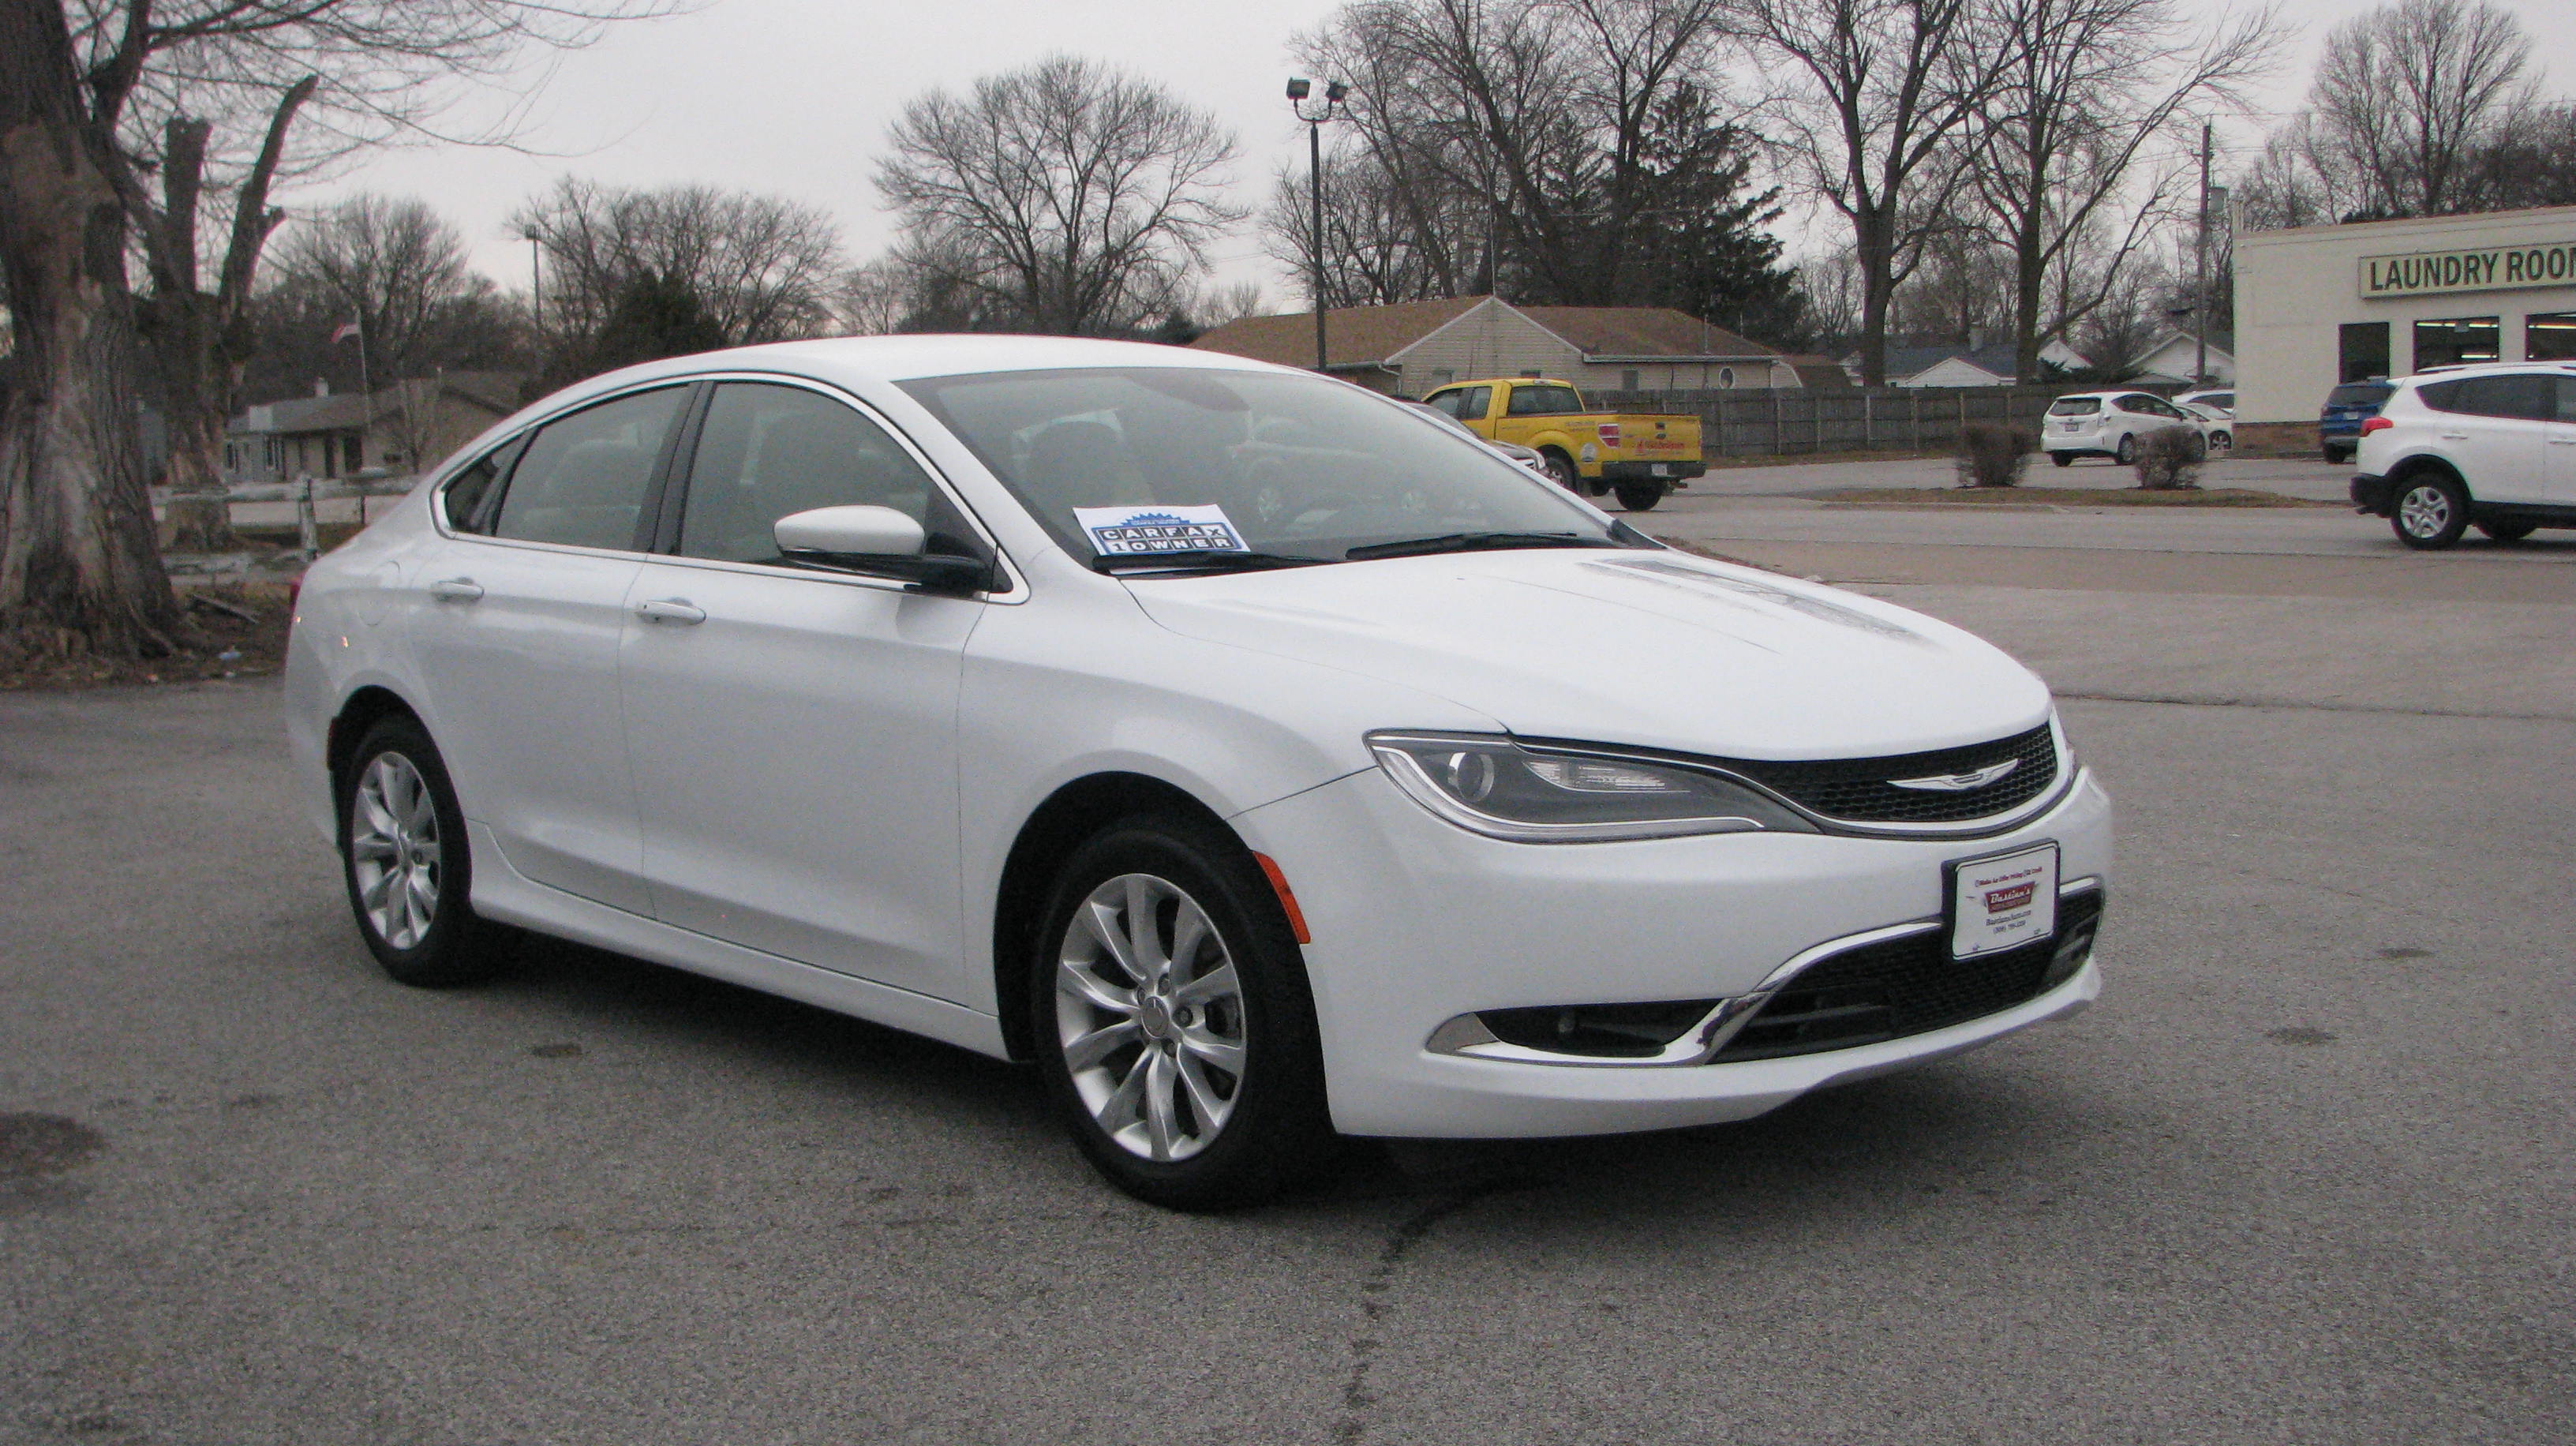 Pre-Owned 2015 Chrysler 200 4d Sedan C I4